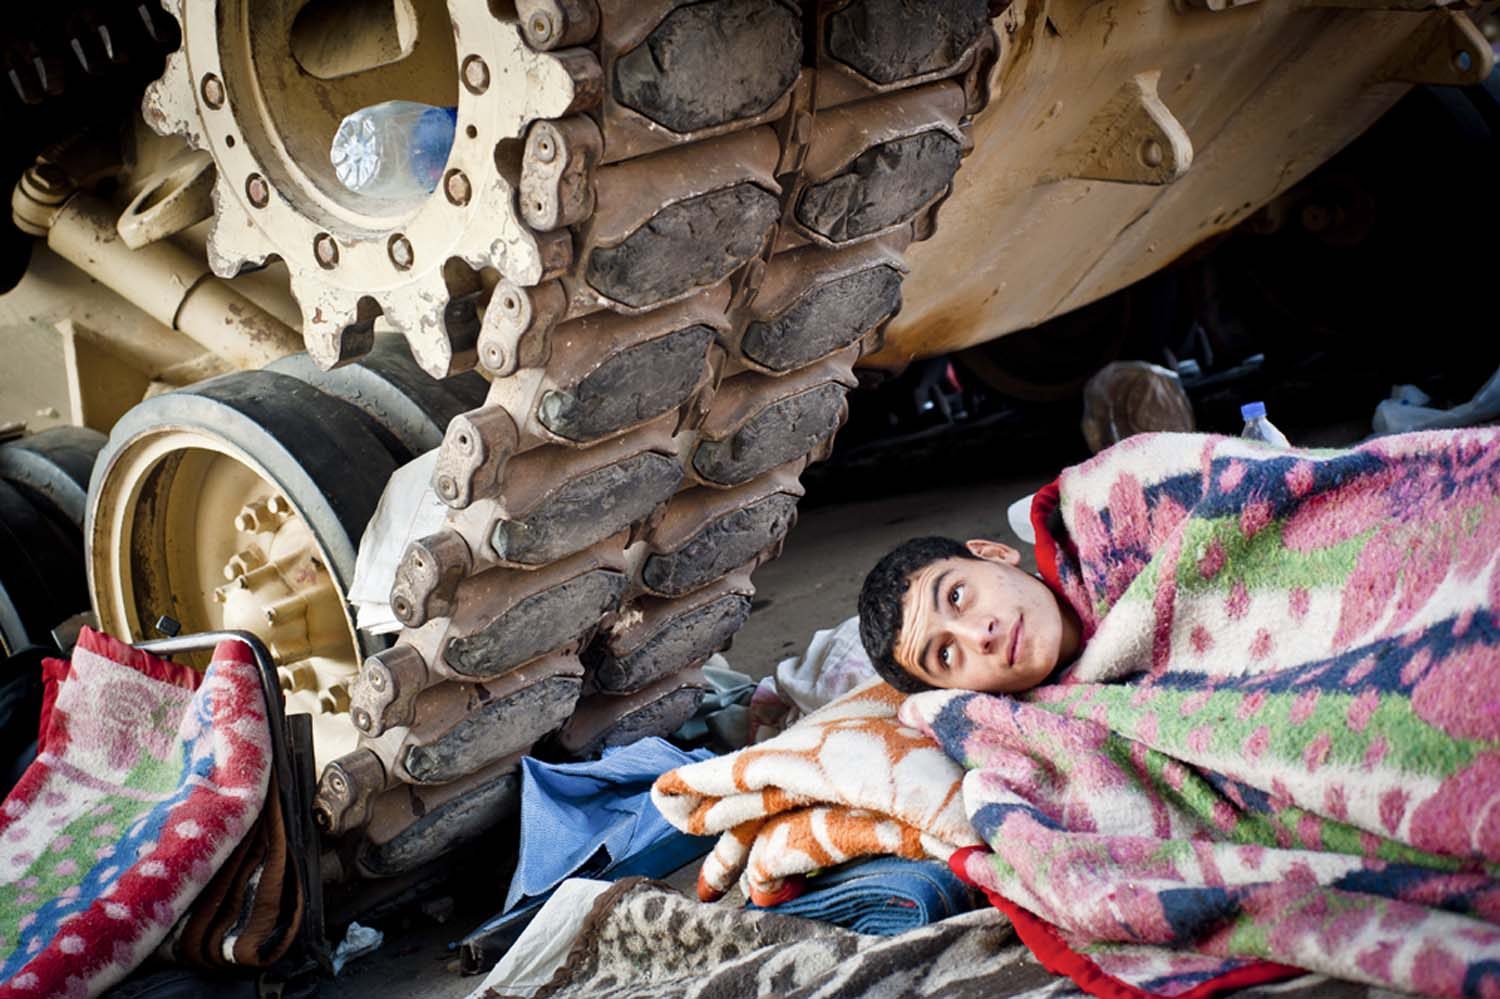 A boy rests under the treads of an Egyptian army tank in Tahrir Square, in downtown Cairo. Protesters gathered there beginning on January 25, 2011, calling for the ouster of President Hosni Mubarak, who had ruled the country unopposed since 1981